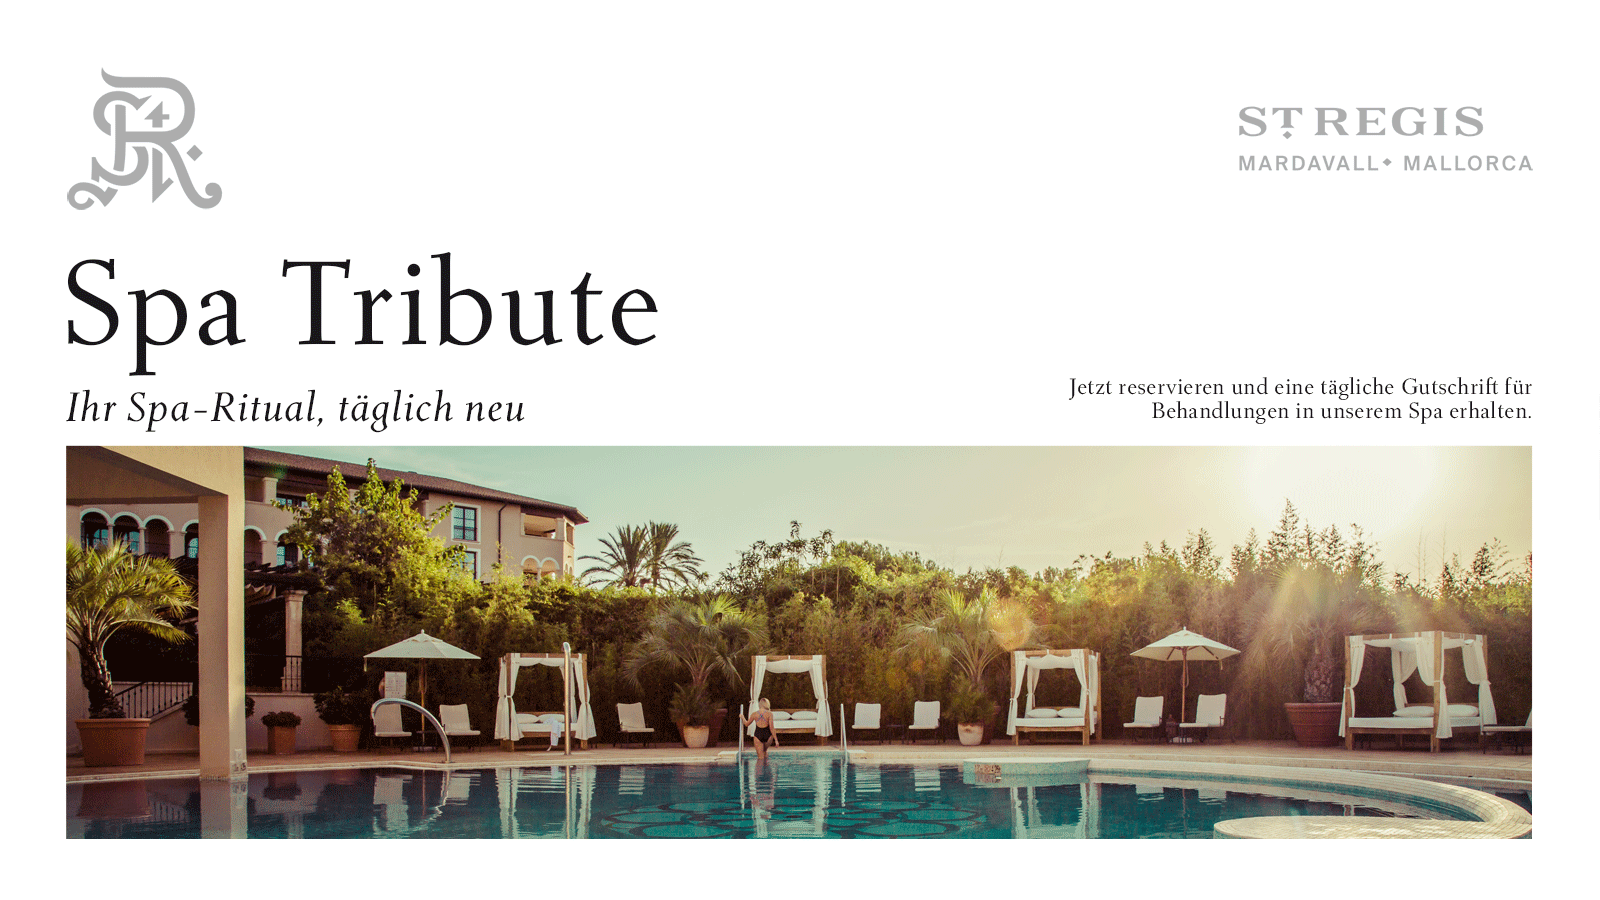 Spa Tribute | The St.Regis Mardavall